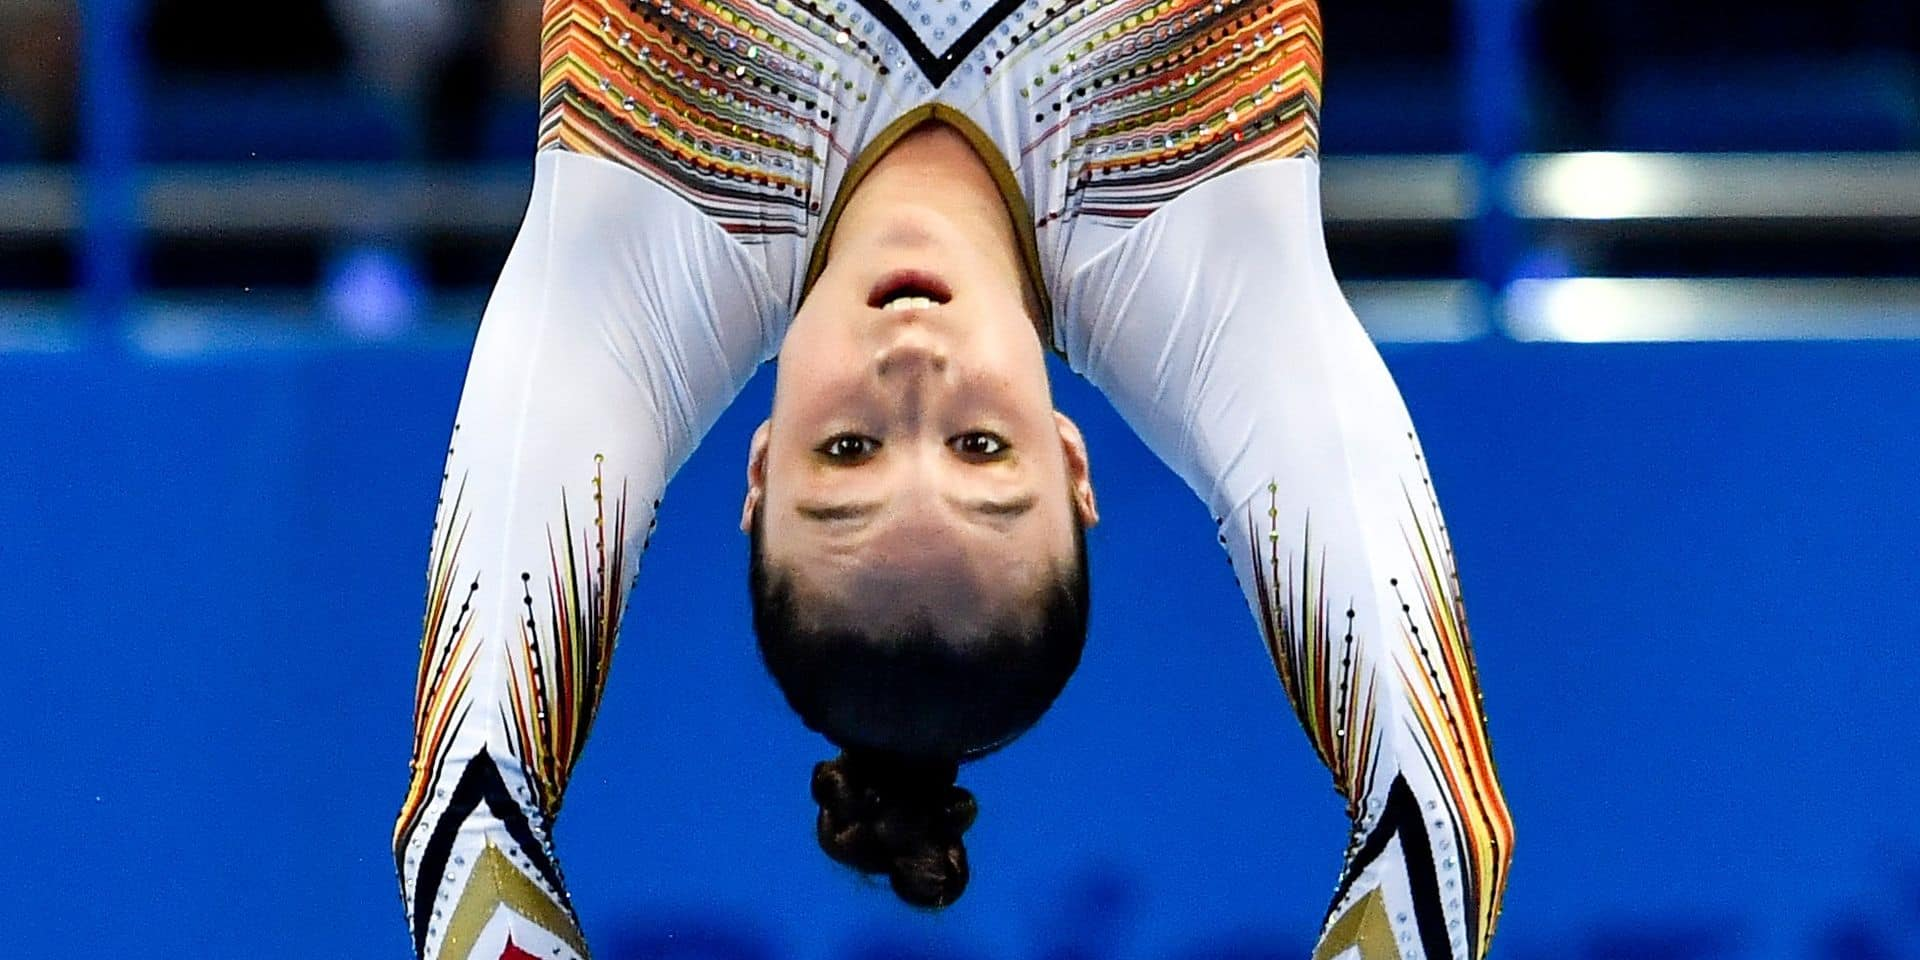 Nina Derwael pictured in action during qualifications of the women's artistic gymnastics event at the European Games in Minsk, Belarus, Thursday 27 June 2019. The second edition of the 'European Games' takes place from 21 to 30 June in Minsk, Belarus. Belgium will present 51 athletes from 11 sports. BELGA PHOTO DIRK WAEM